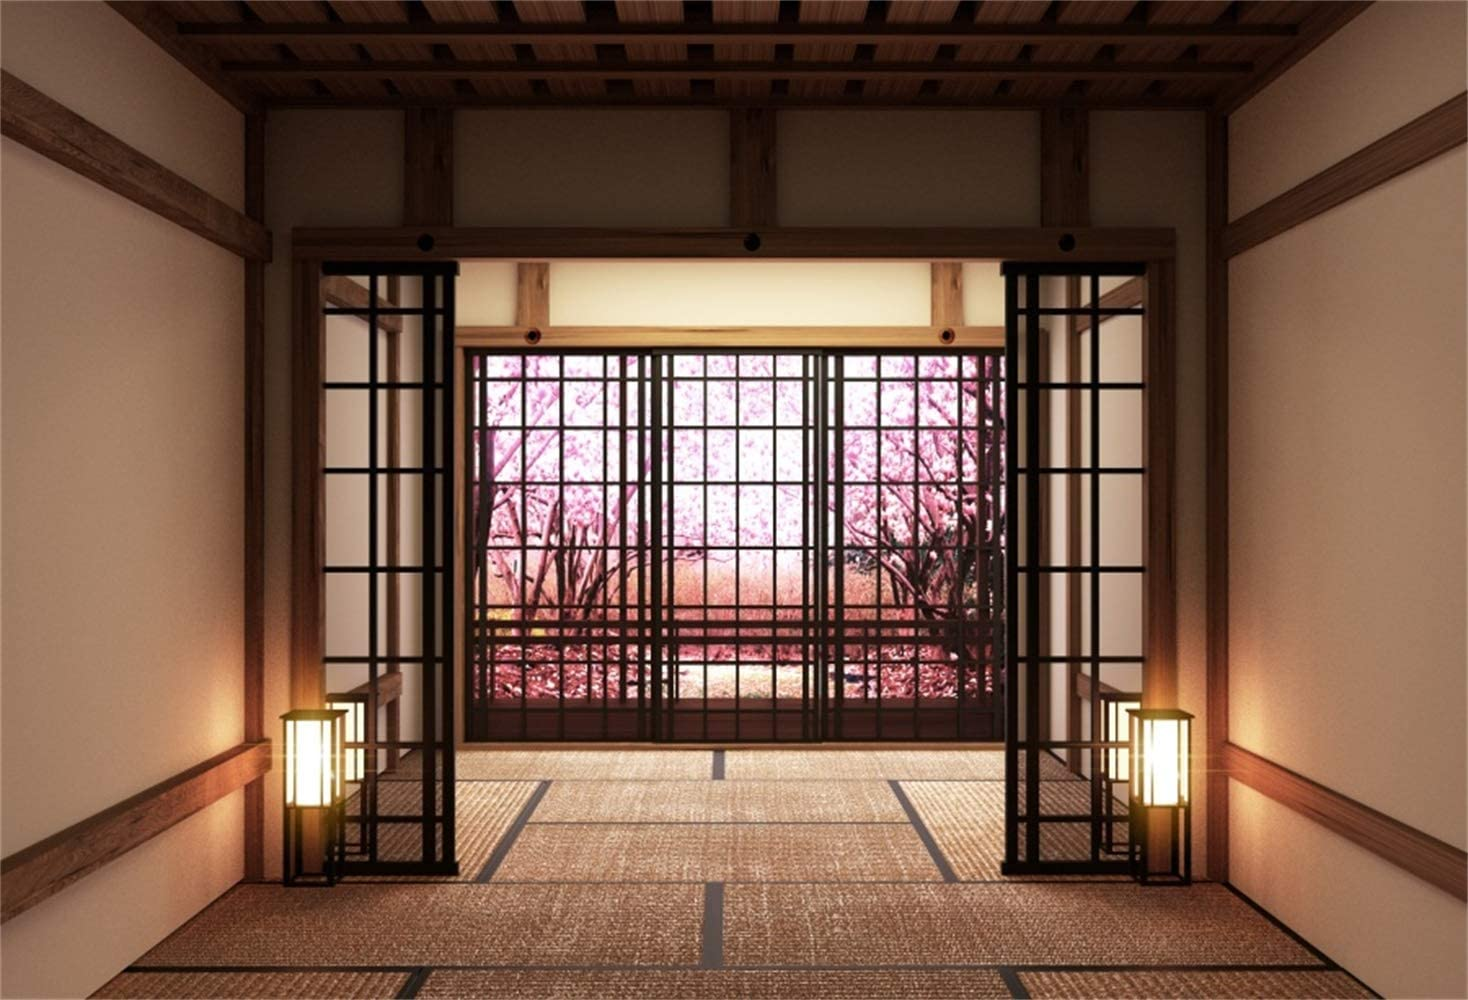 Laeacco 10x8ft Japanese Style Empty Lobby Interior Blooming Trees Vinyl Photography Background Japan Traditional Residence Backdrop Indoor Decoration Wallpaper Studio Photo Props